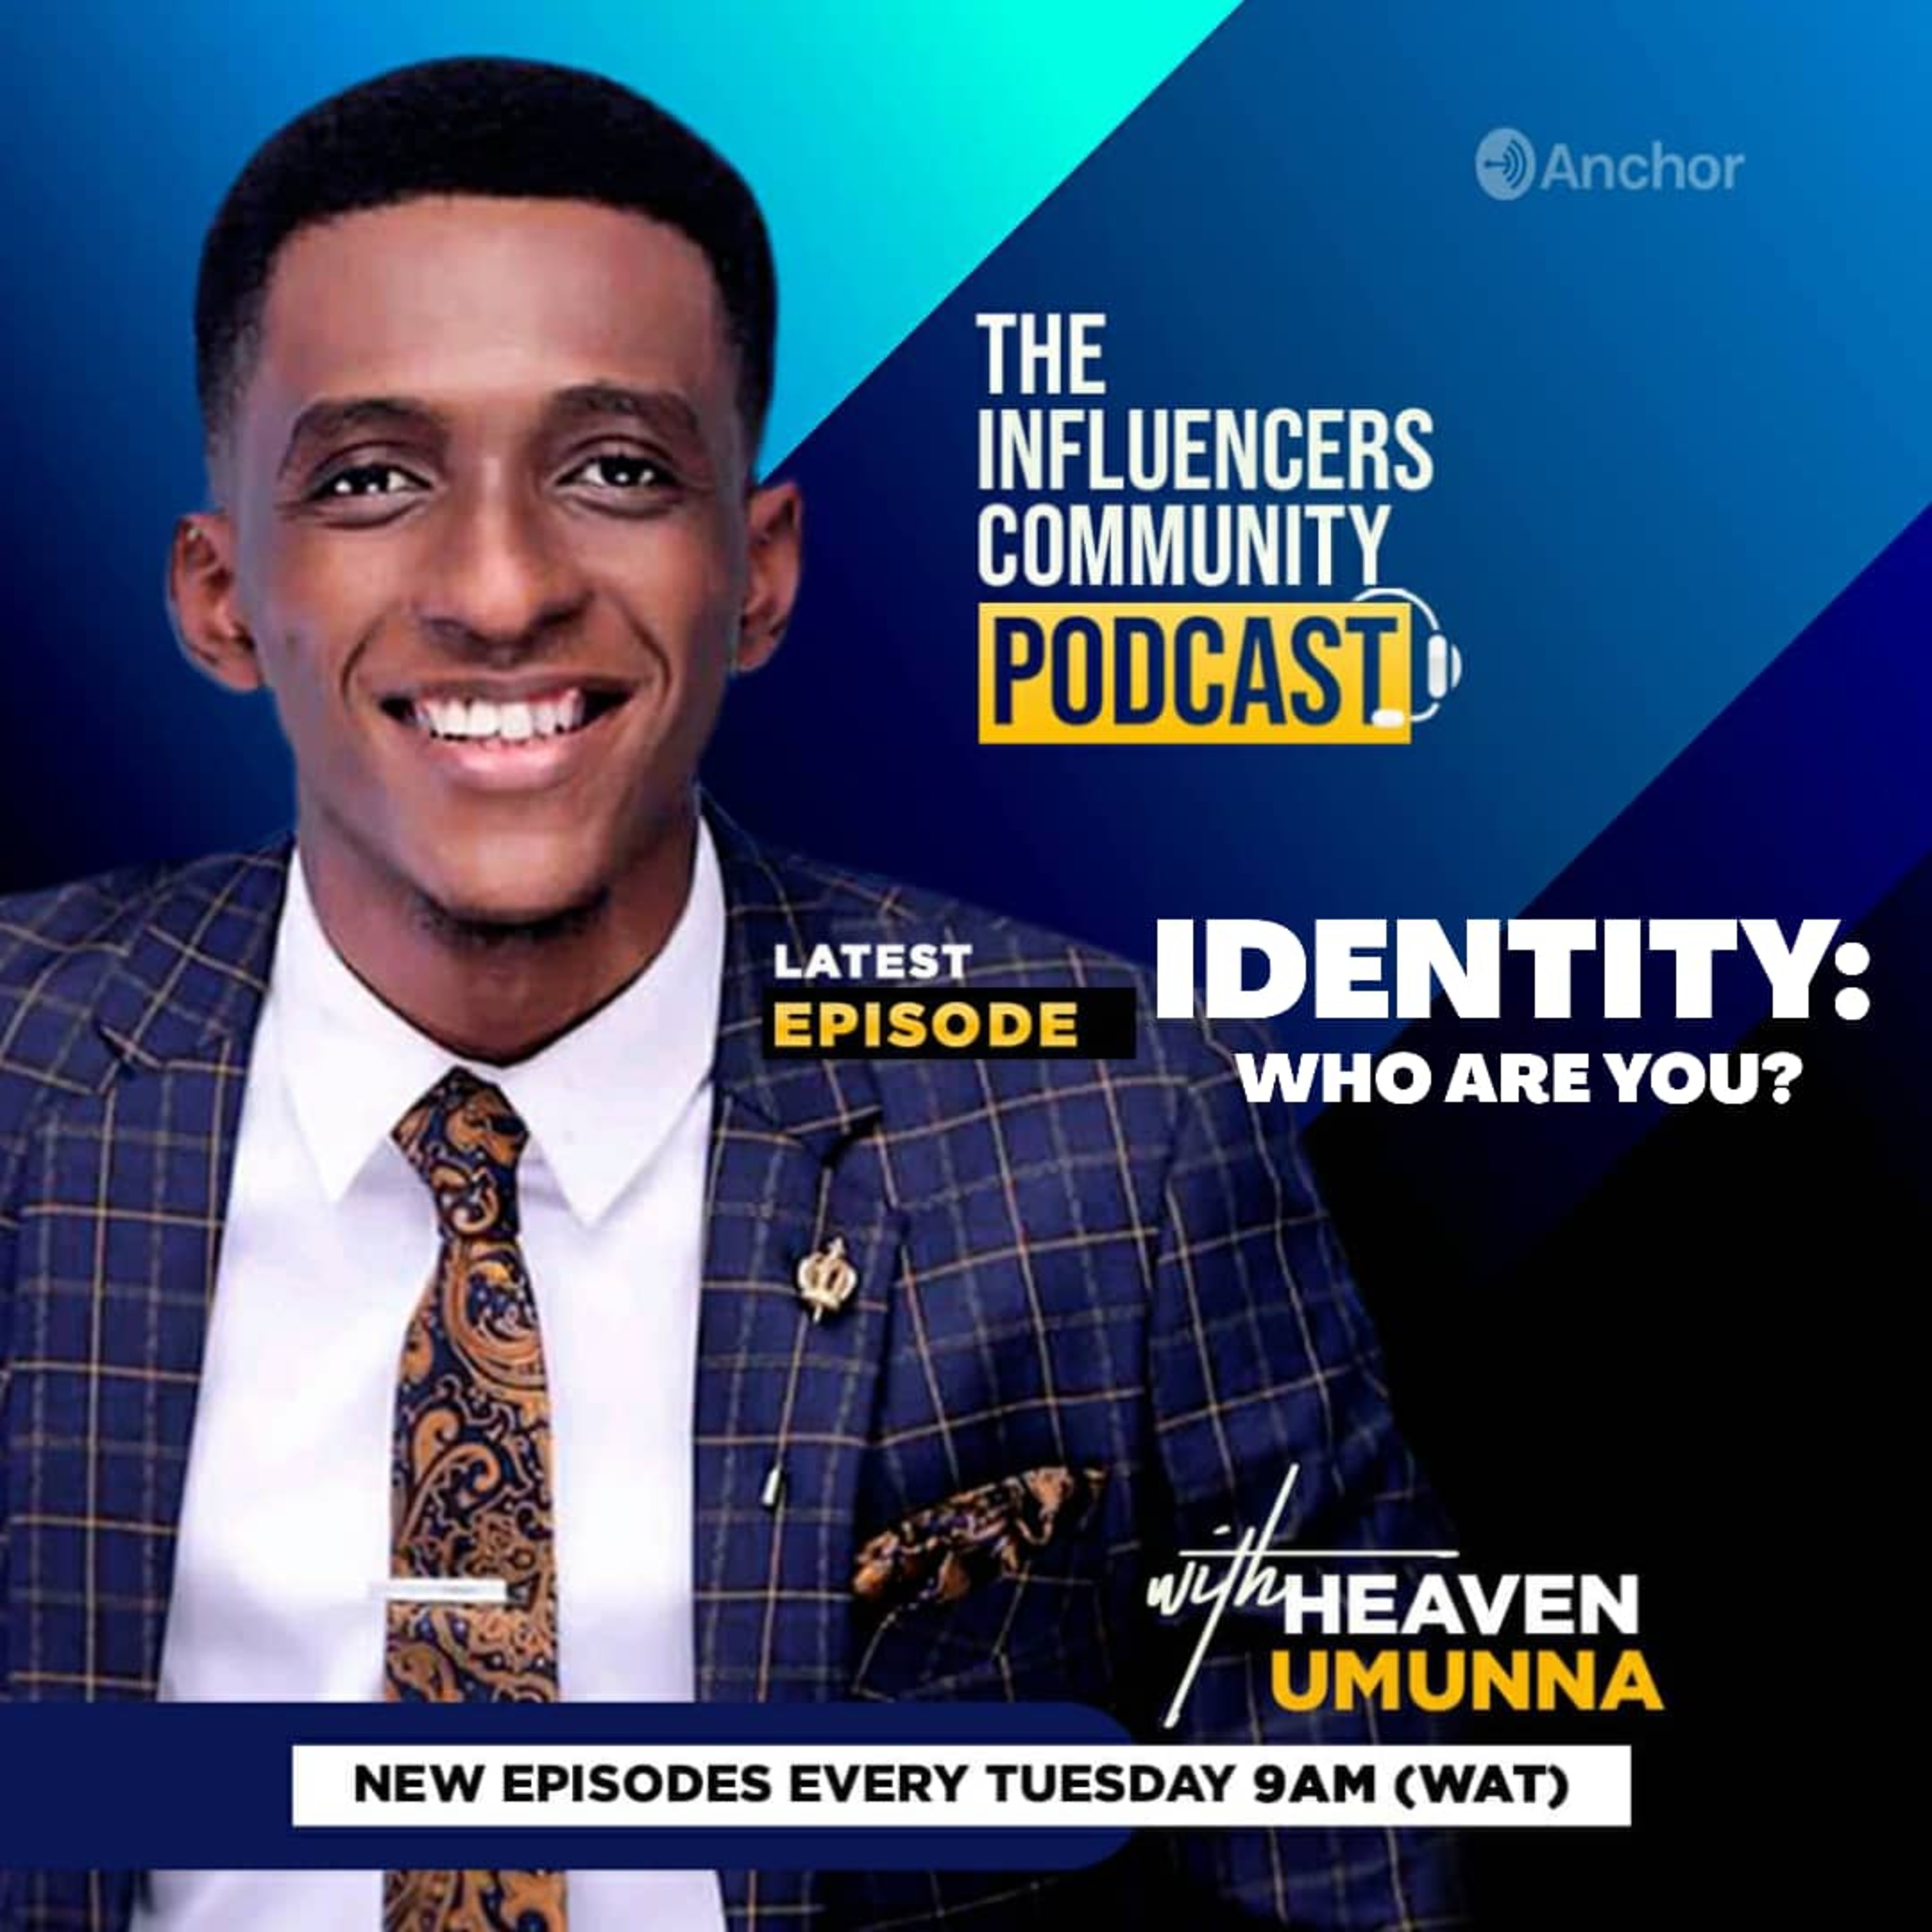 The Influencers Community Podcast With Heaven UMUNNA on Jamit